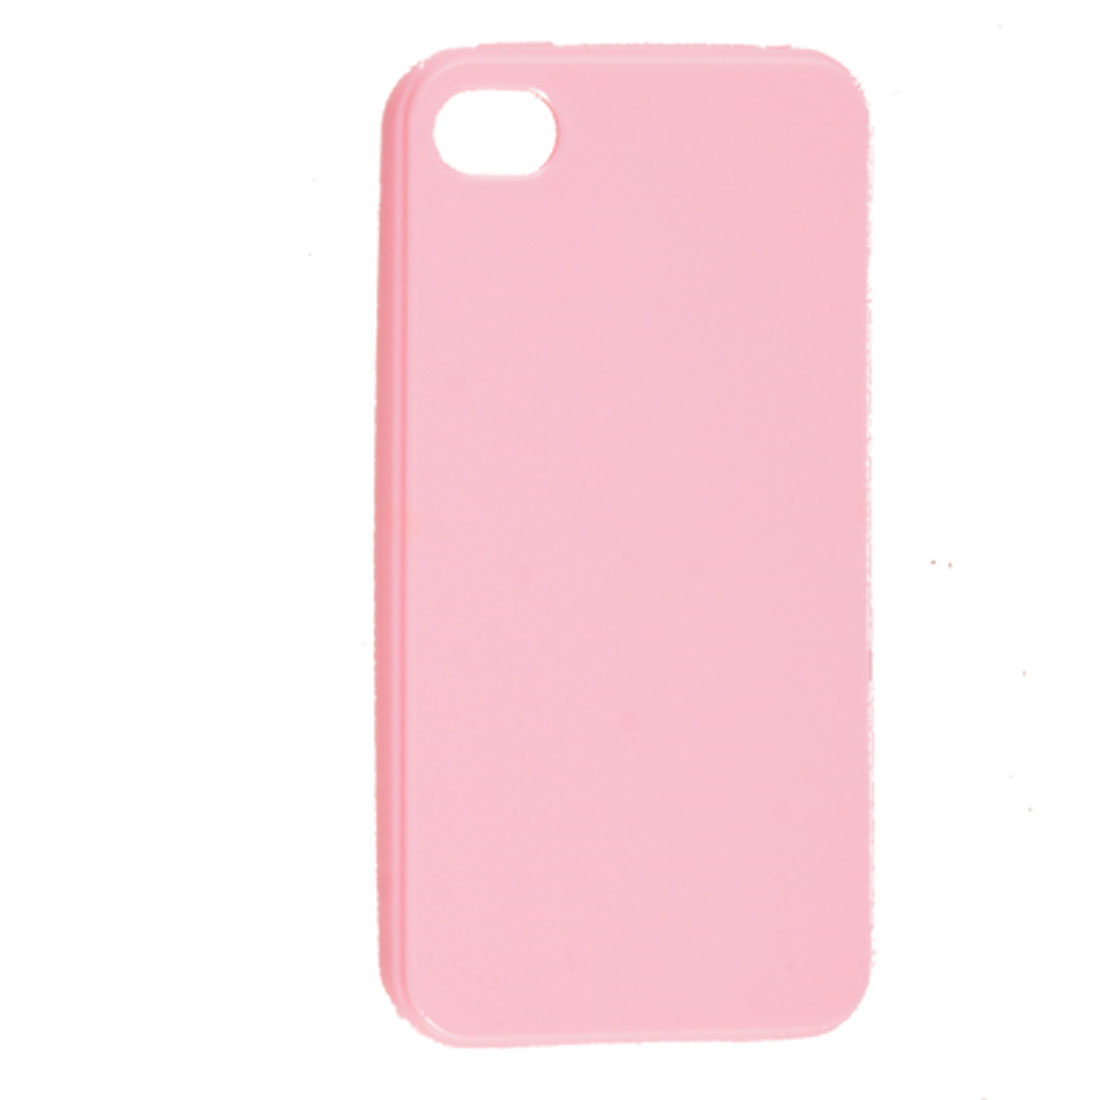 Light Pink TPU Plastic Protector Cover for Apple iPhone 4 4G